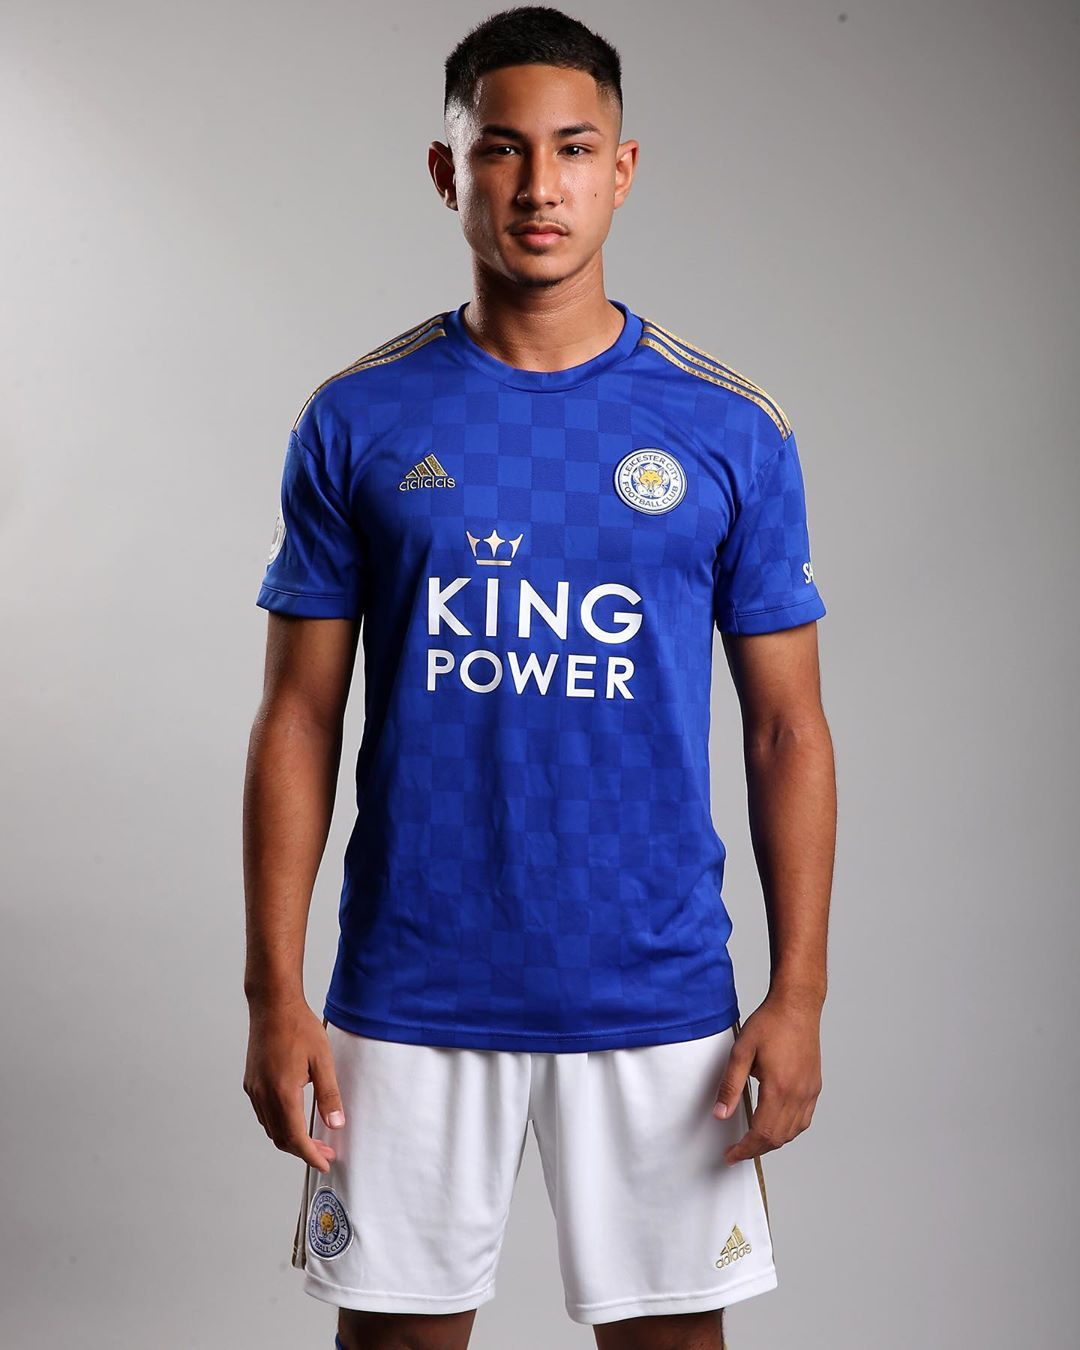 Faiq Bolkiah - Richest Footballers in the world 2020